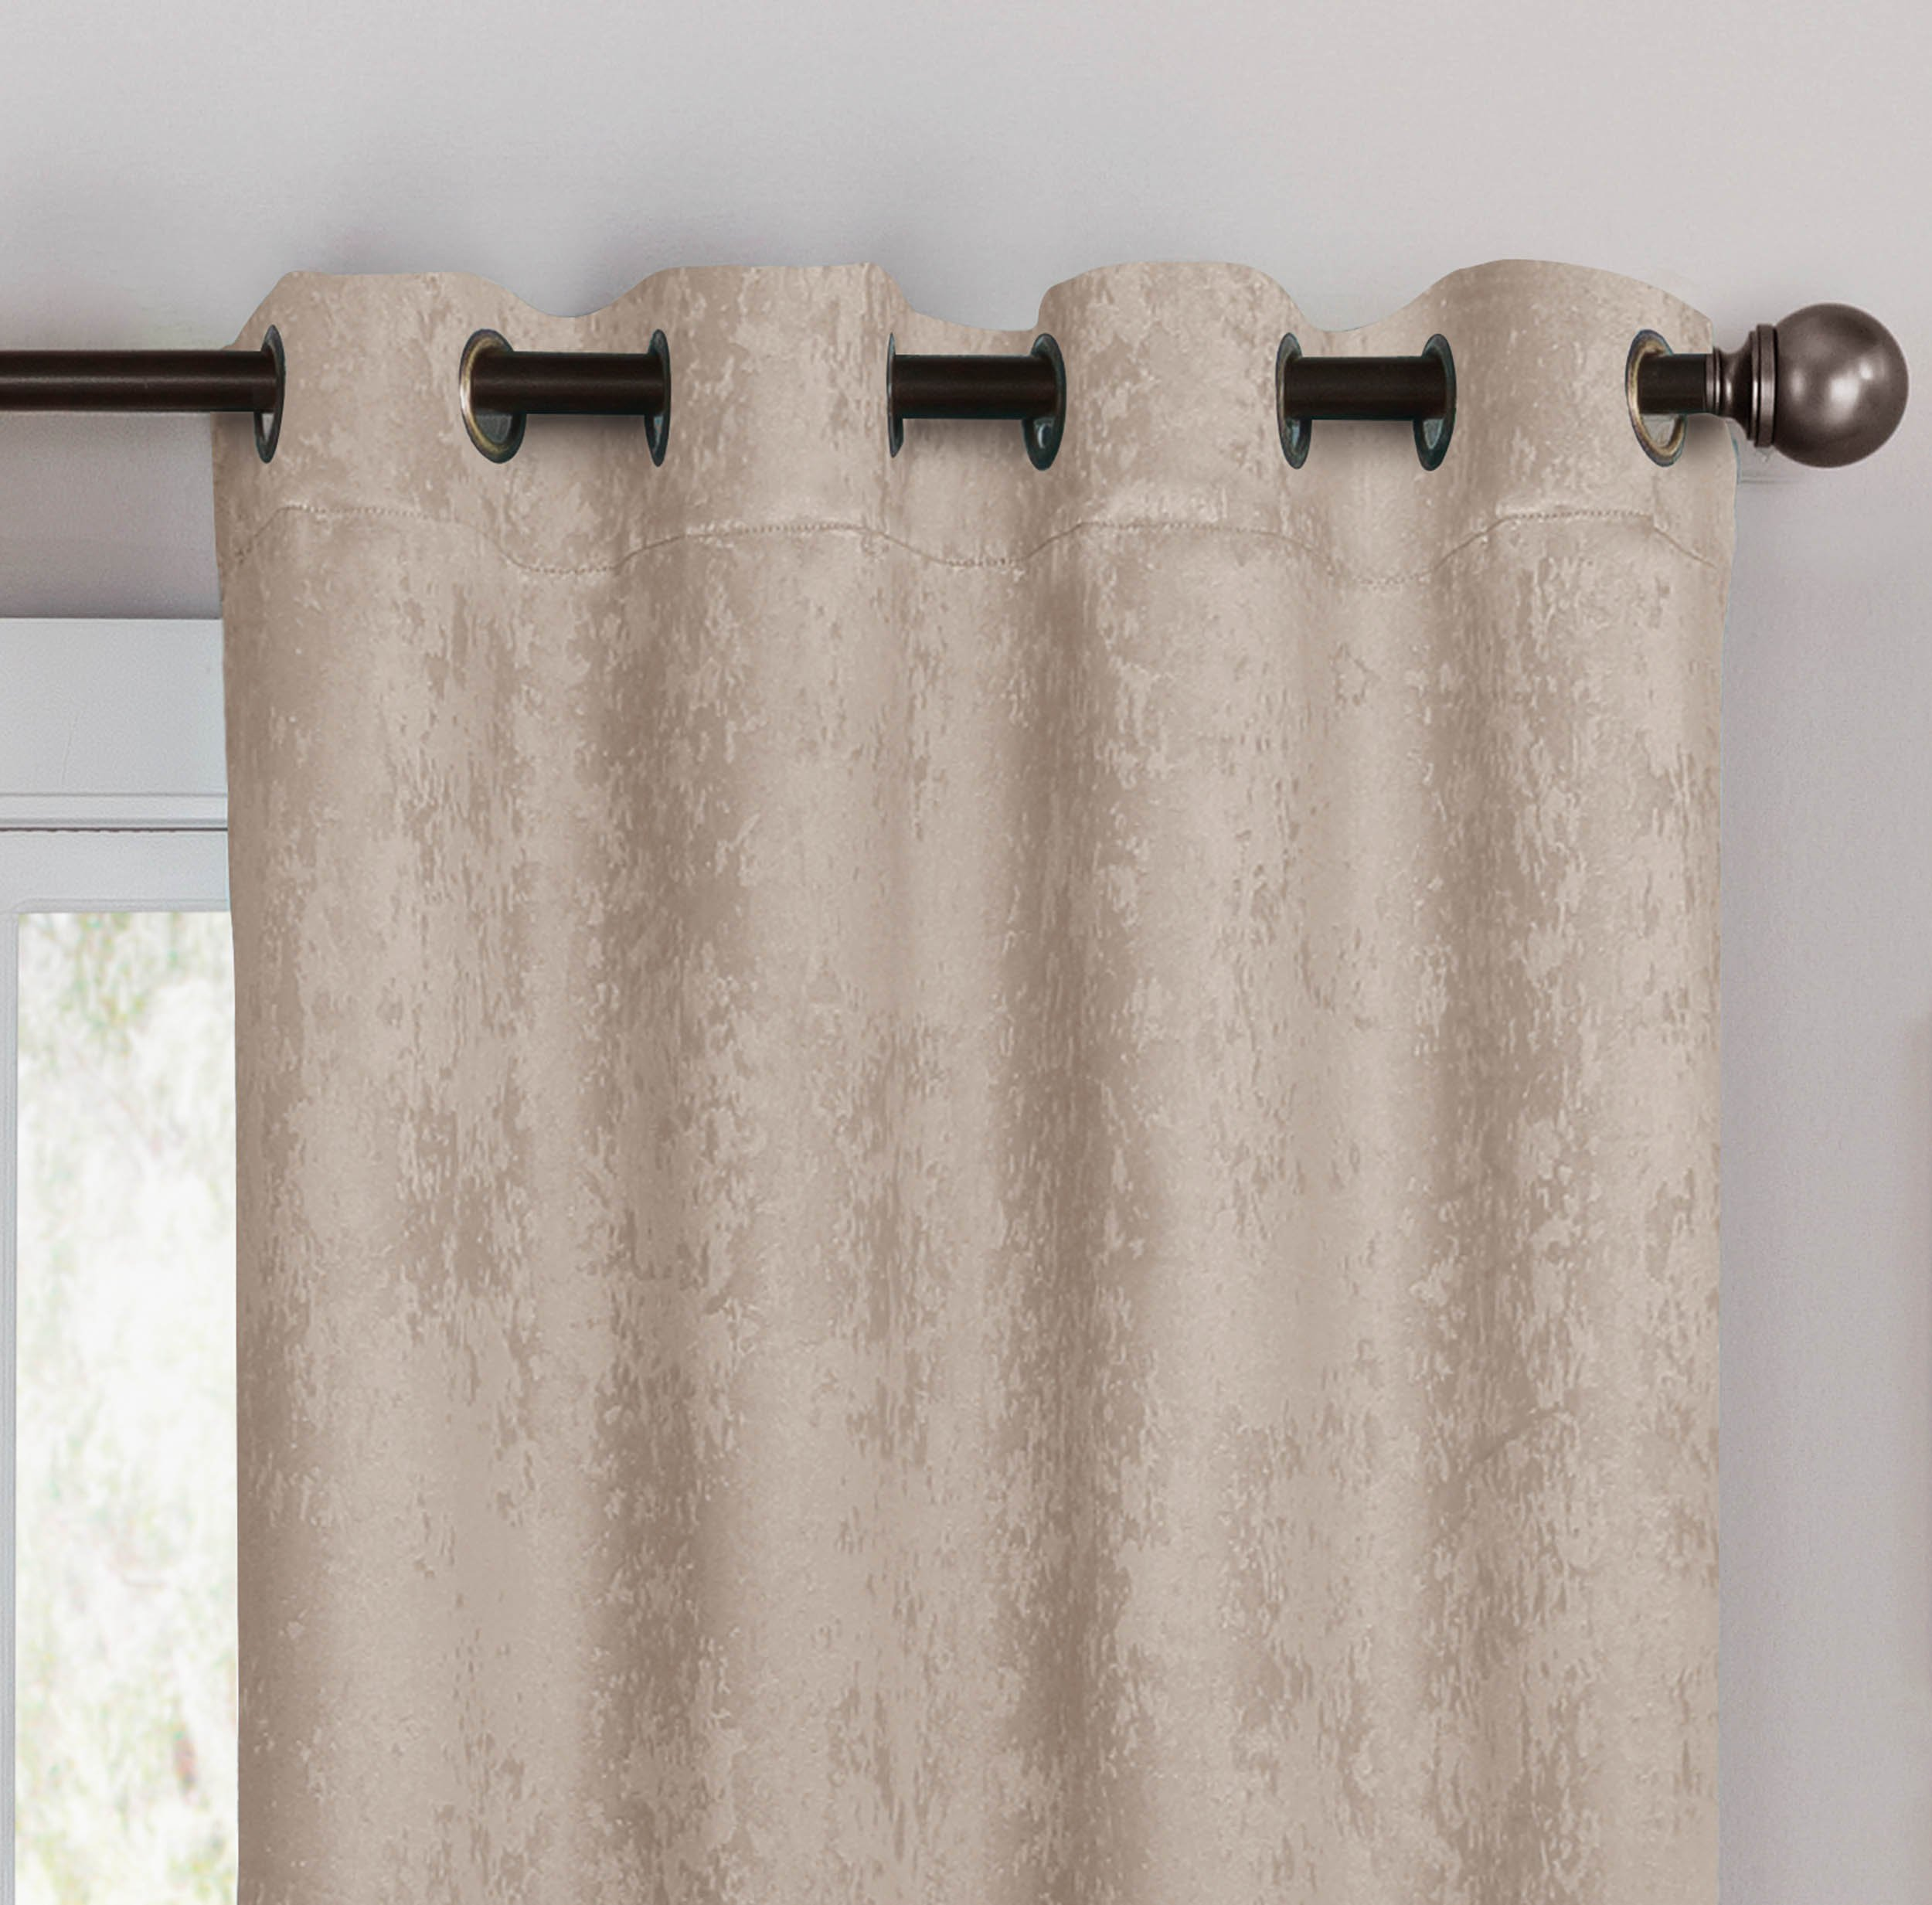 Bella Luna Faux Suede Room Darkening Extra Wide 108 x 84 in. Grommet Curtain Panel Pair, Taupe - Pair includes (2) 54 in. x 84 in. curtain panels (total width coverage: 108 in.) Each lined extra-wide panel features (8) gunmetal-colored grommets Room-darkening thermal lining is energy saving, light blocking and noise reducing - living-room-soft-furnishings, living-room, draperies-curtains-shades - 81gOtzewAAL -